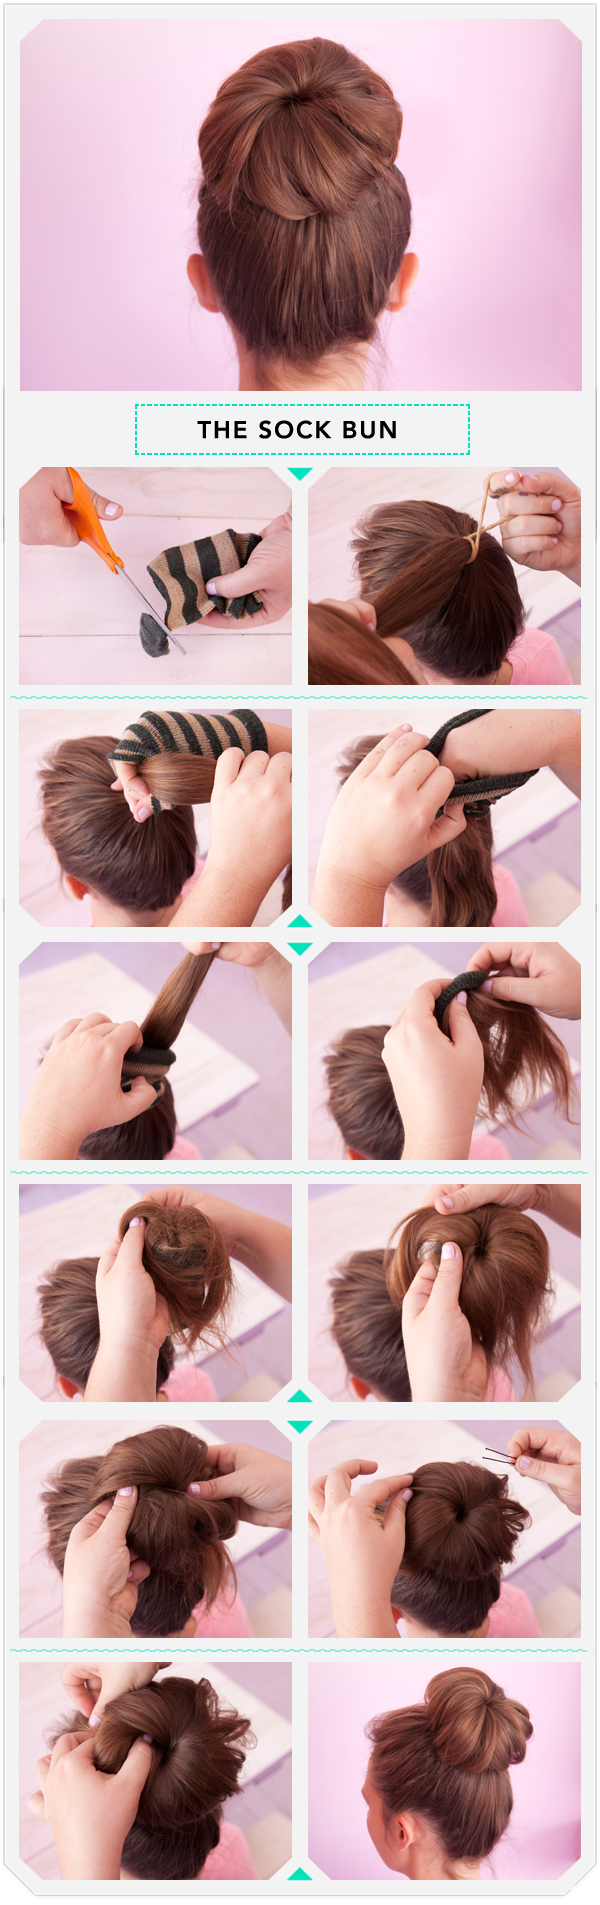 How To Do a Sock Bun #joejamesbeauty